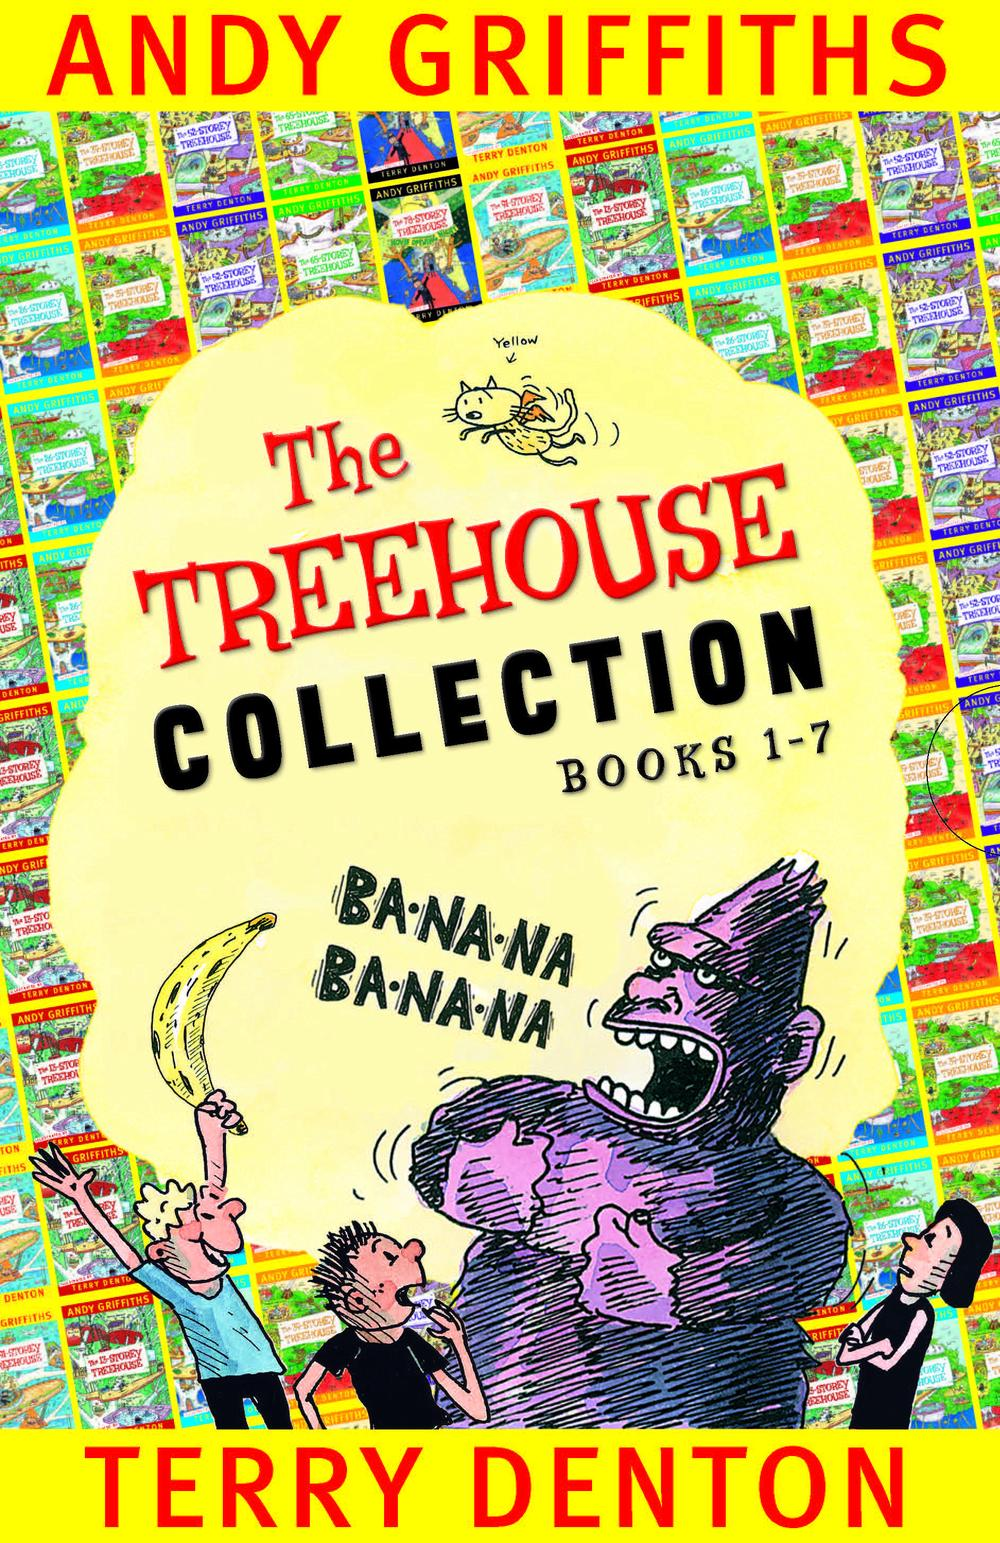 The Treehouse Collection Boxed Set: Books 1-7